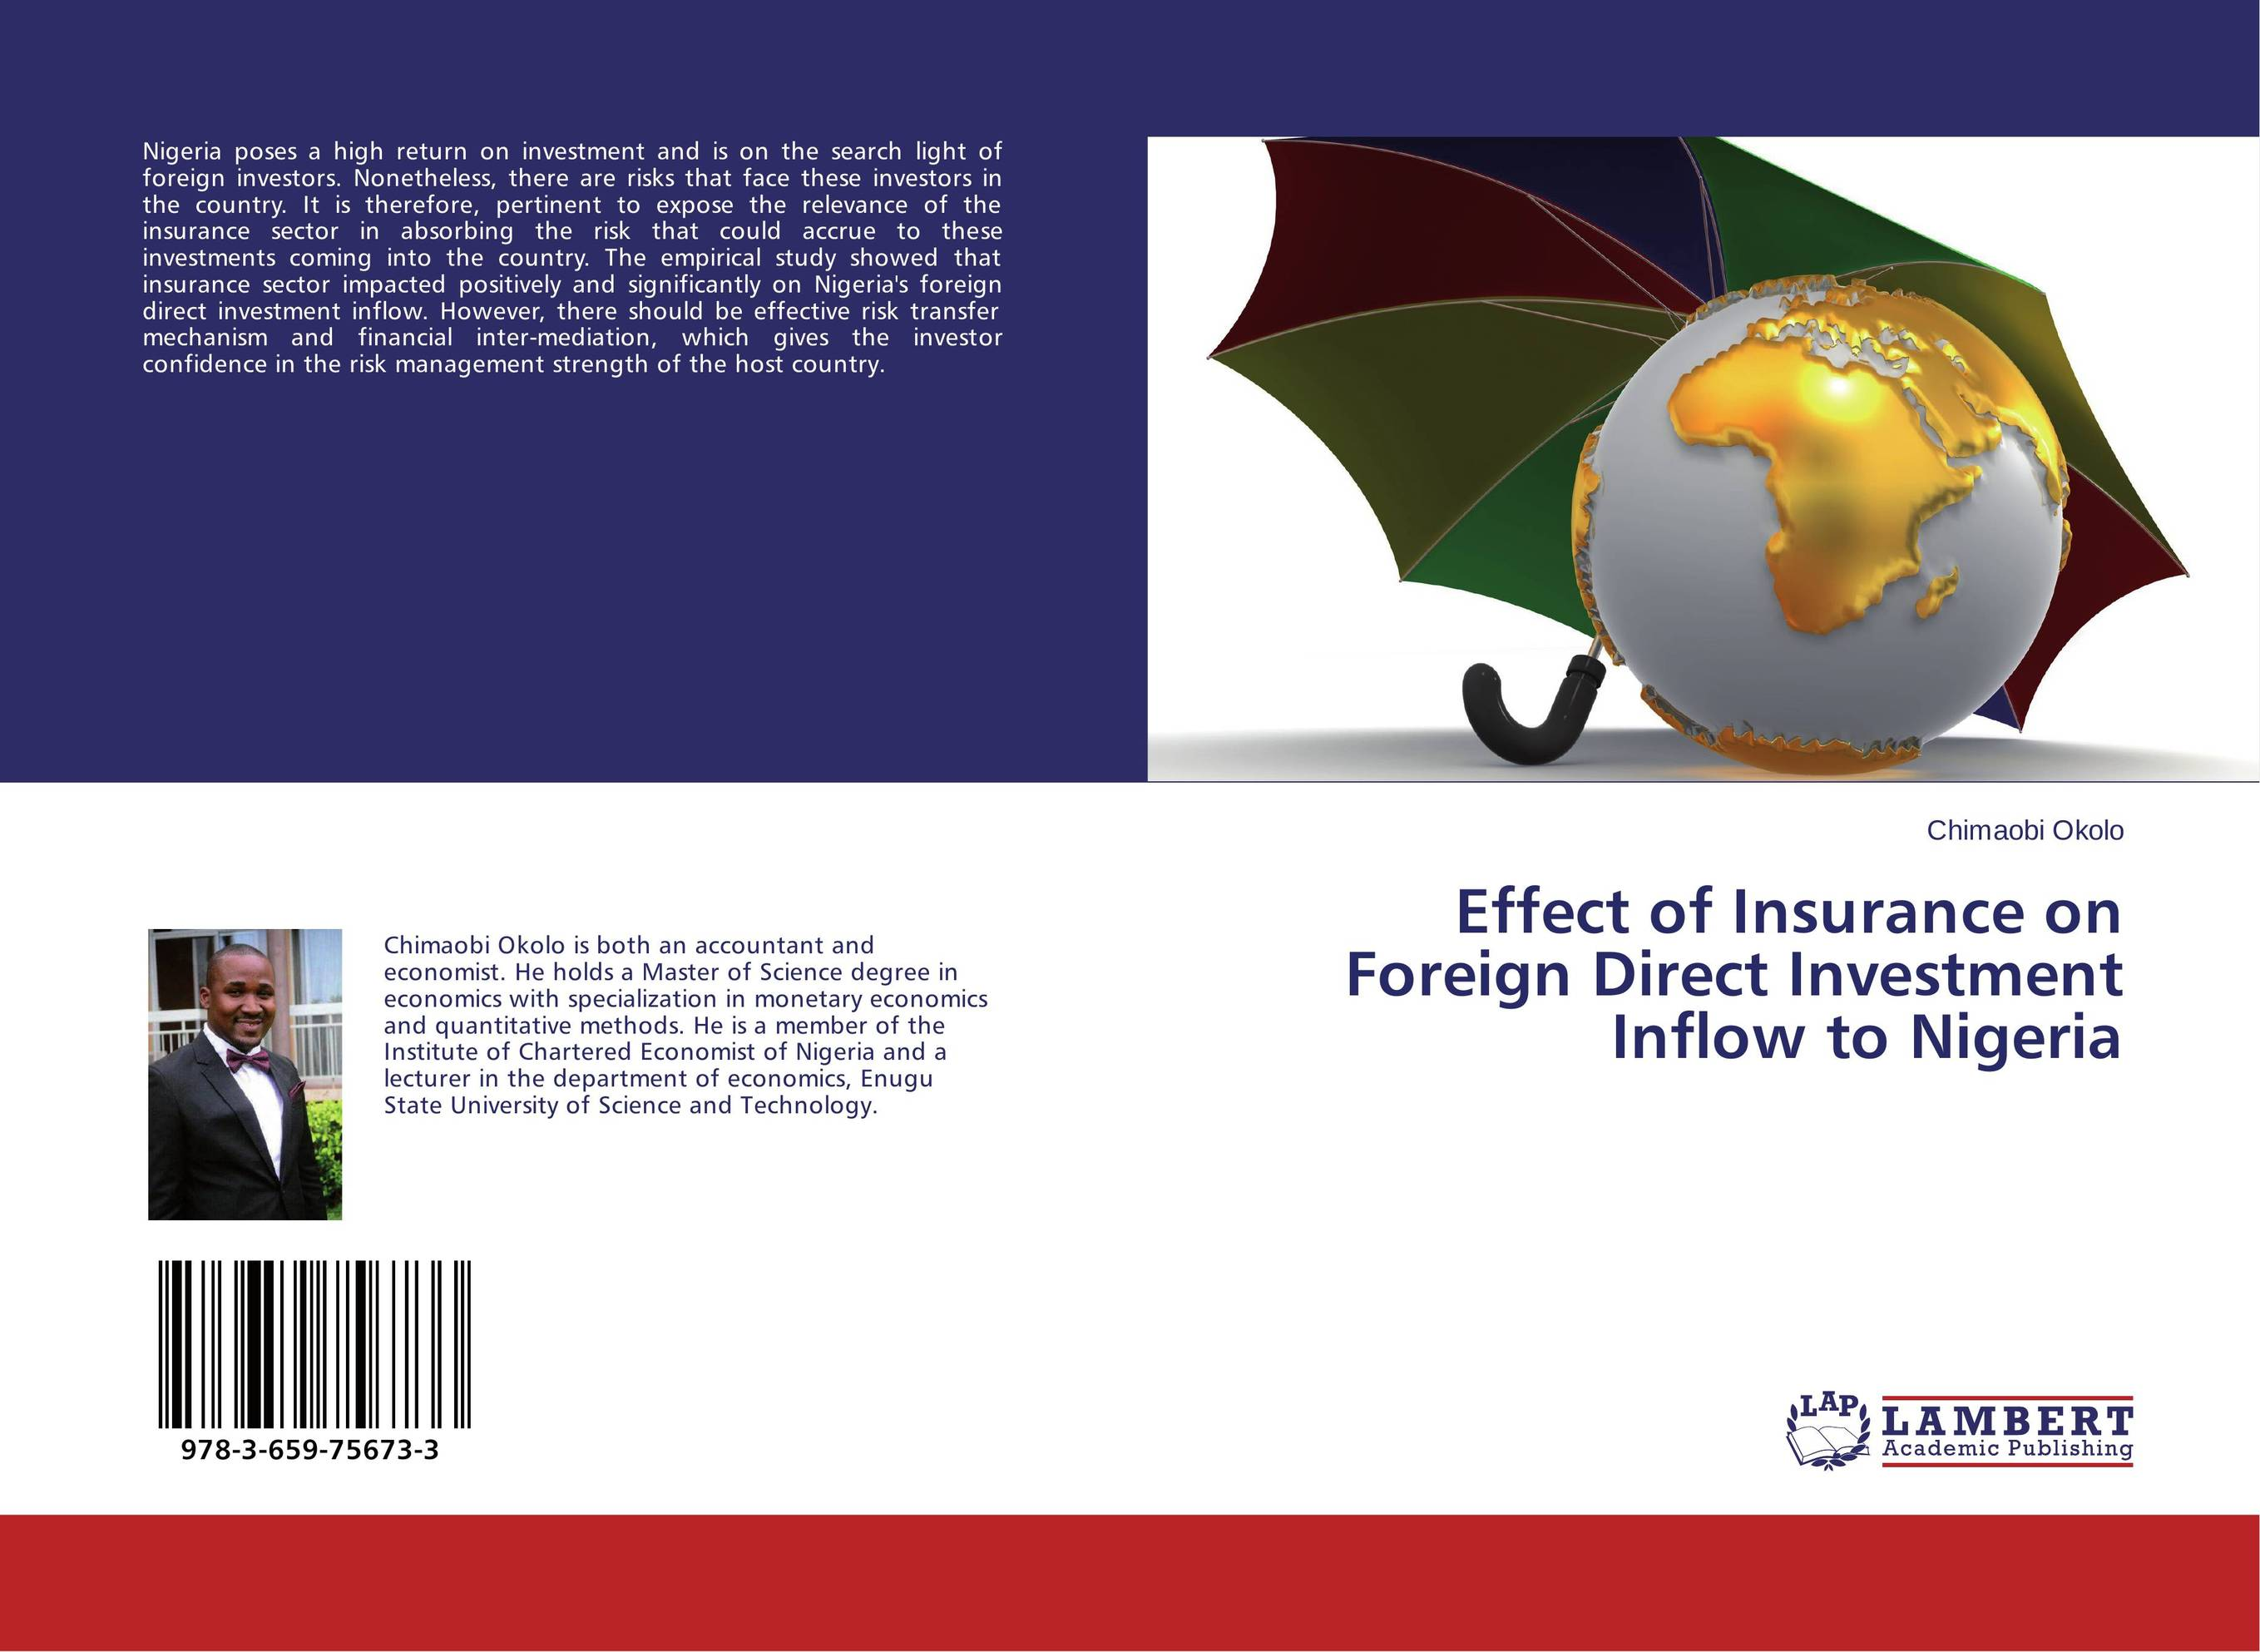 Effect of Insurance on Foreign Direct Investment Inflow to Nigeria surfactants effect on hardness of dental stone and investment material